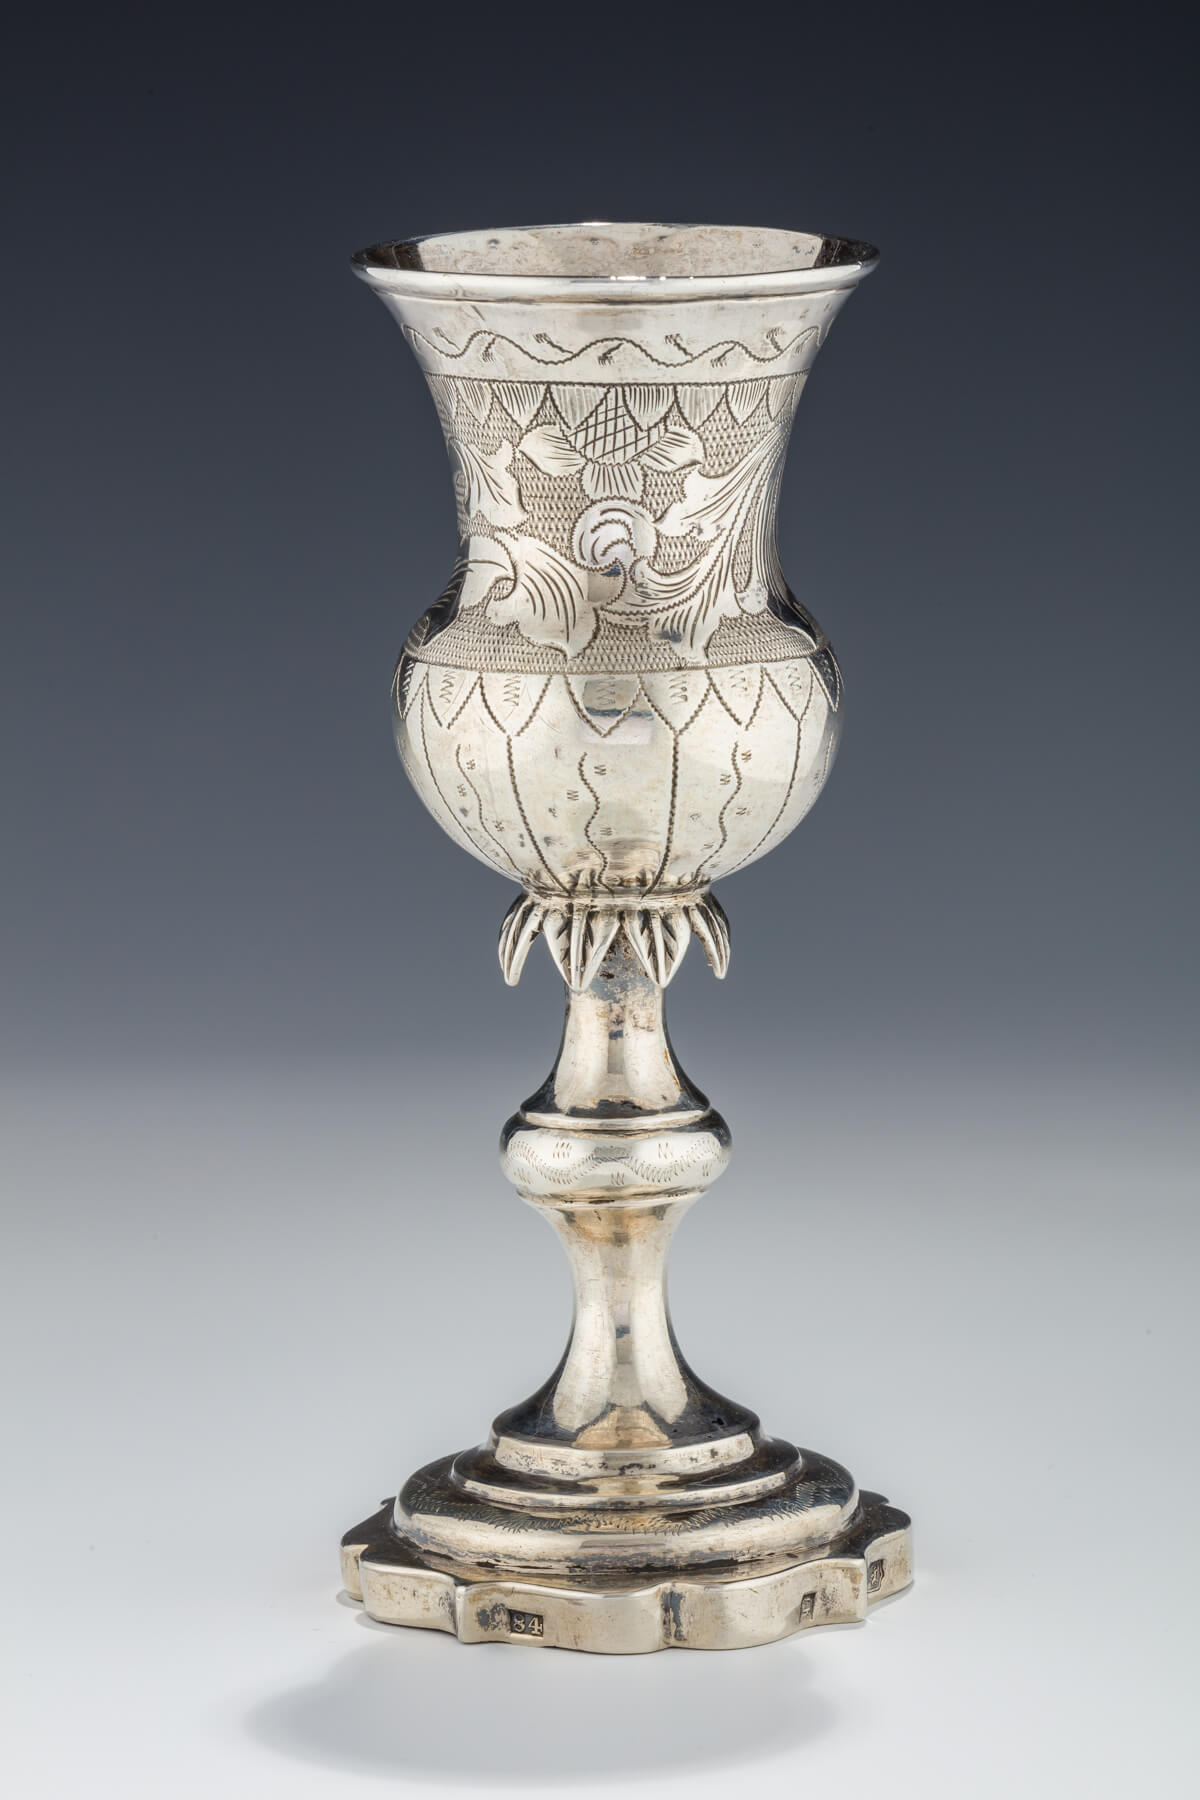 044. A Large Silver Kiddush Goblet